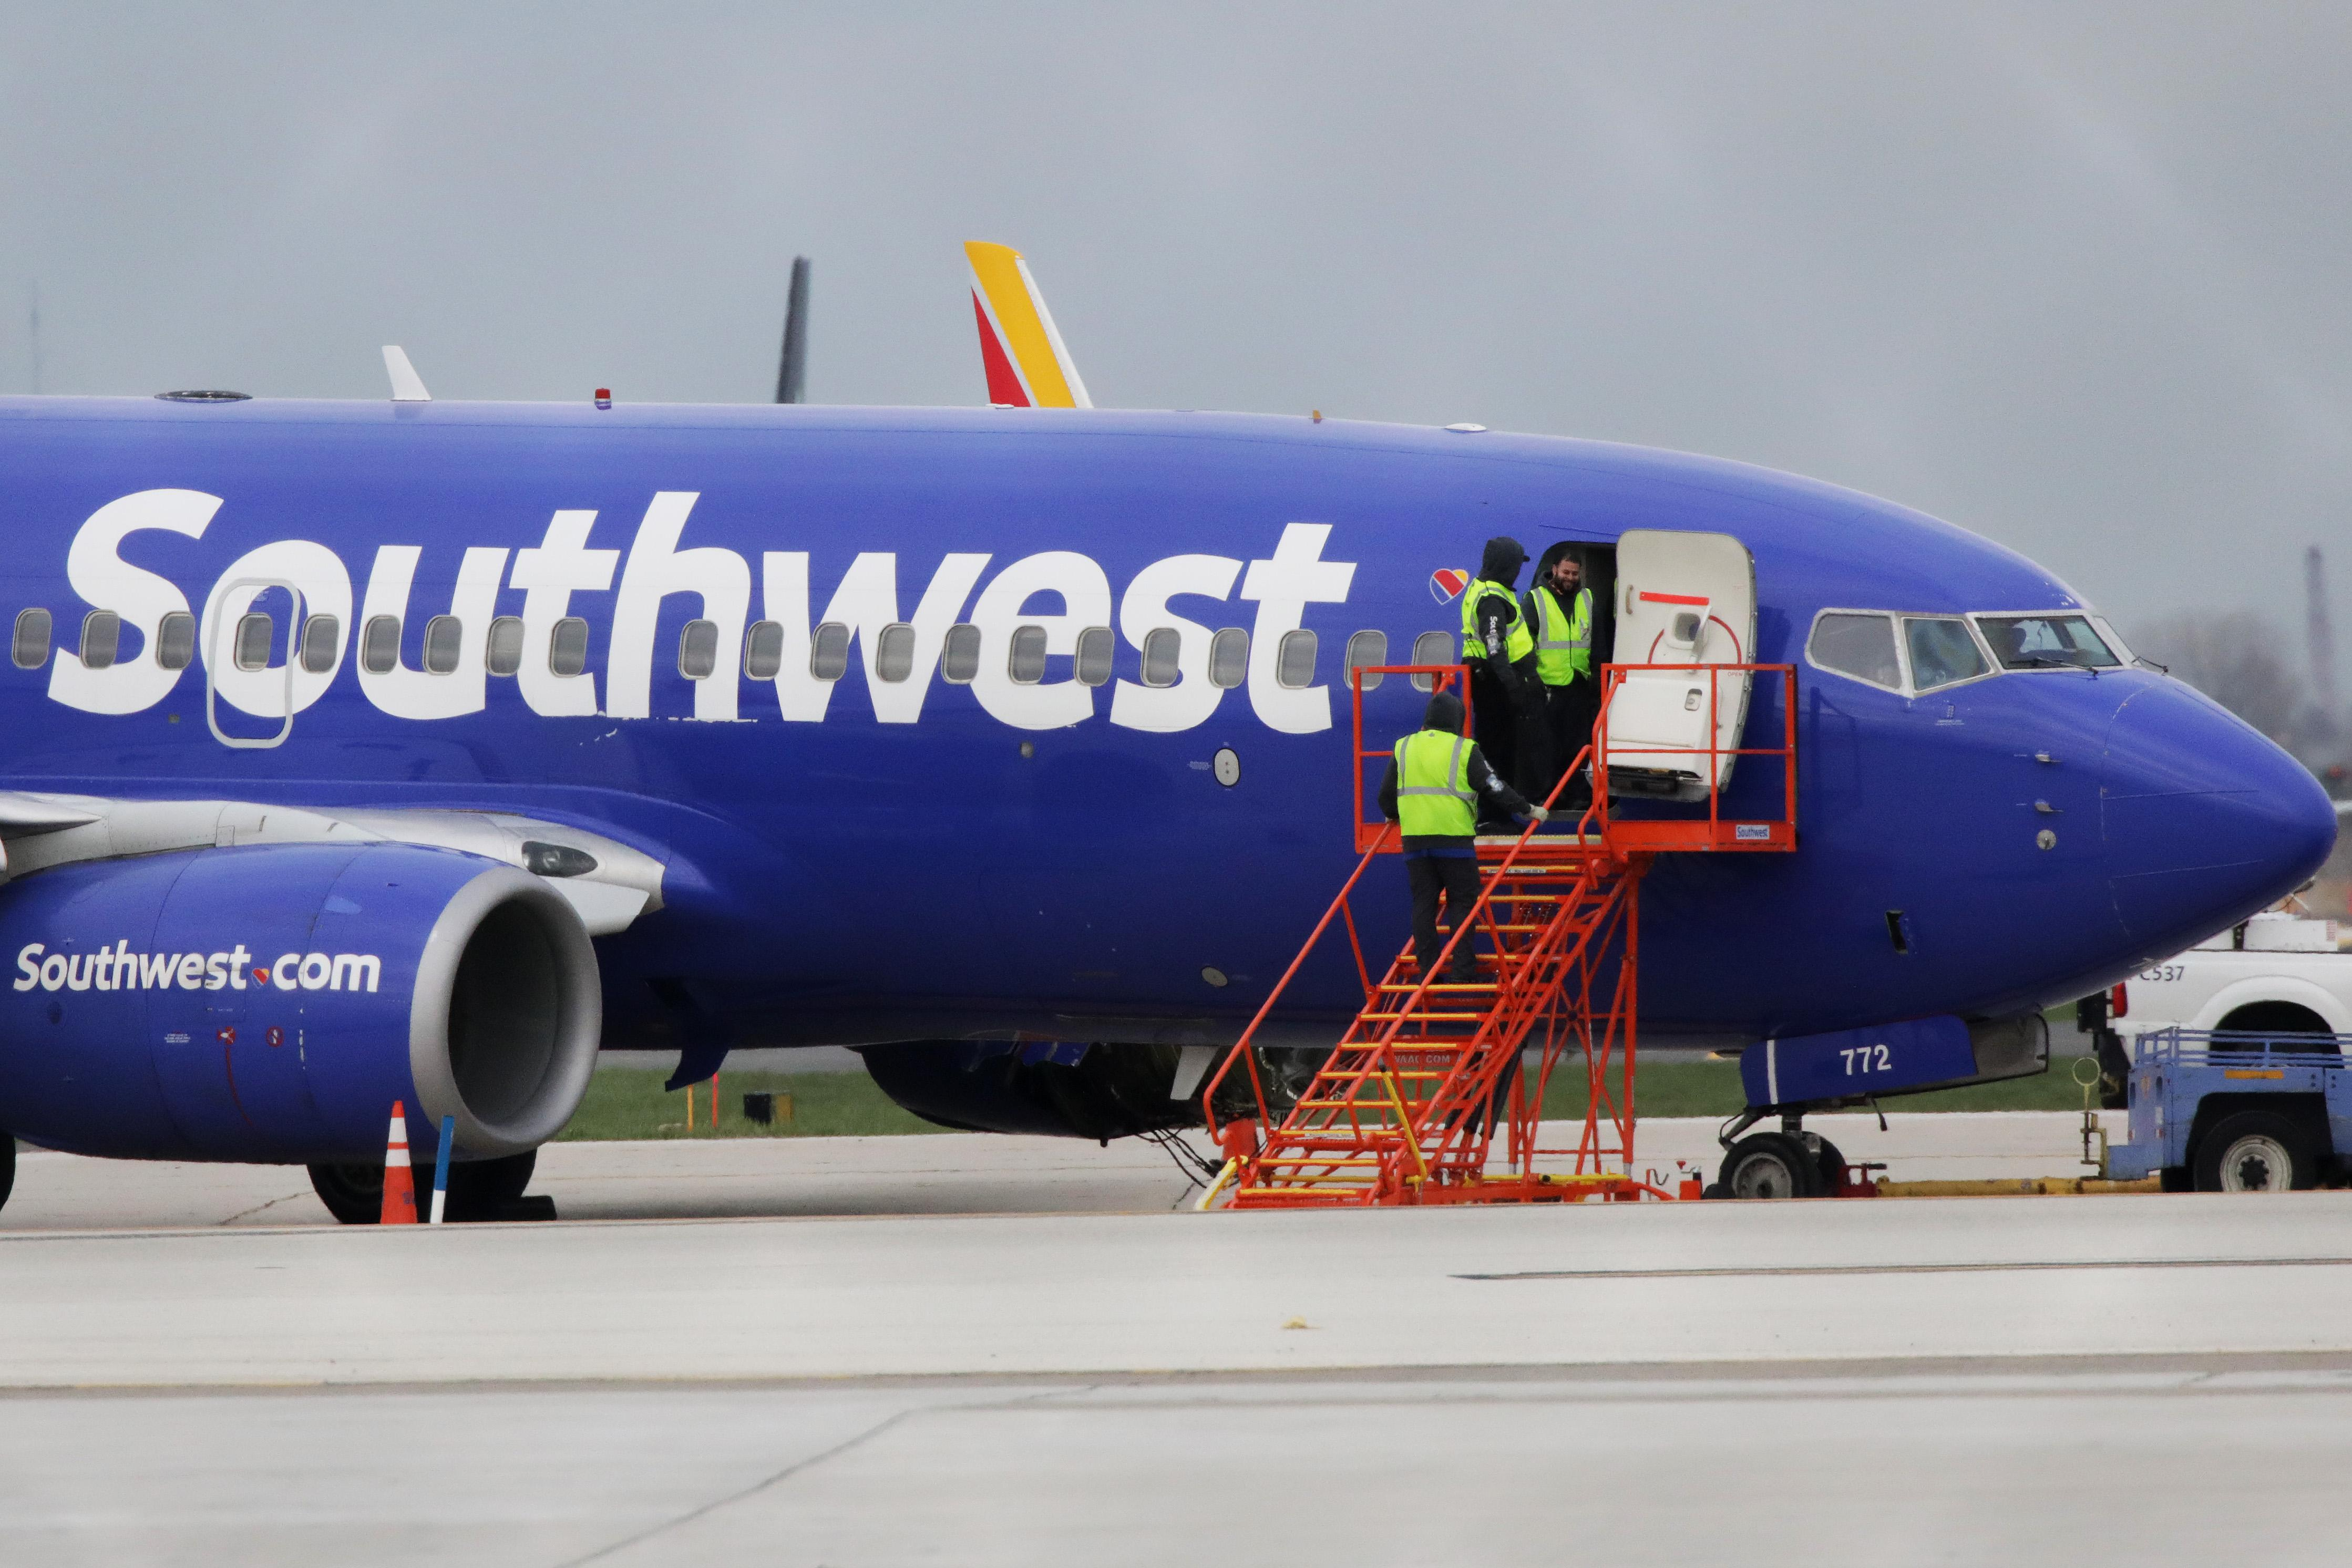 Southwest Flight 861 makes emergency landing In Dallas after losing cabin pressure